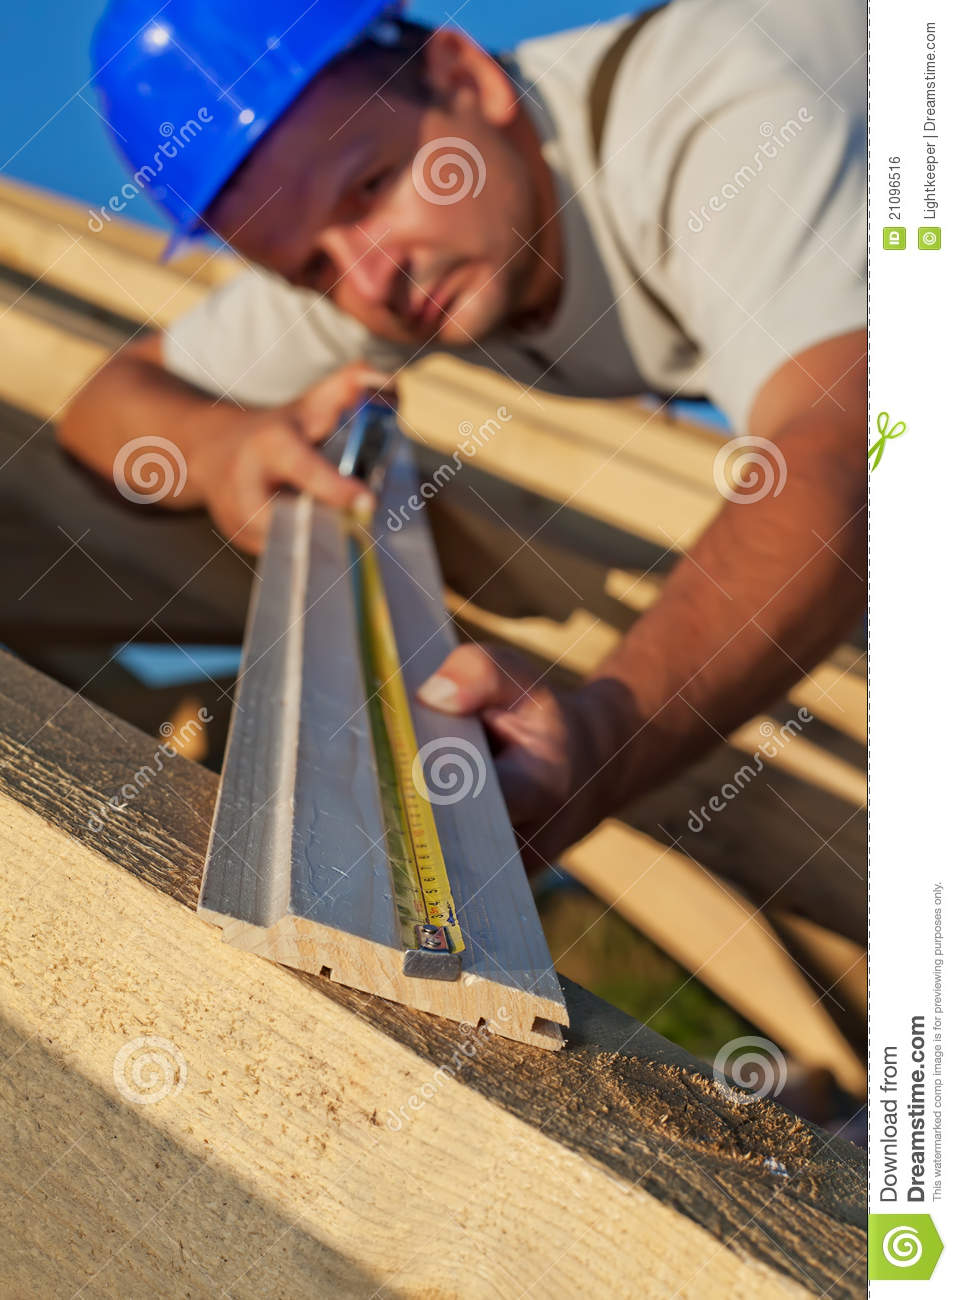 Carpentry Carpenter Woodworker Woodworking Wooden: Carpenter Measuring Wood Planck Royalty Free Stock Image